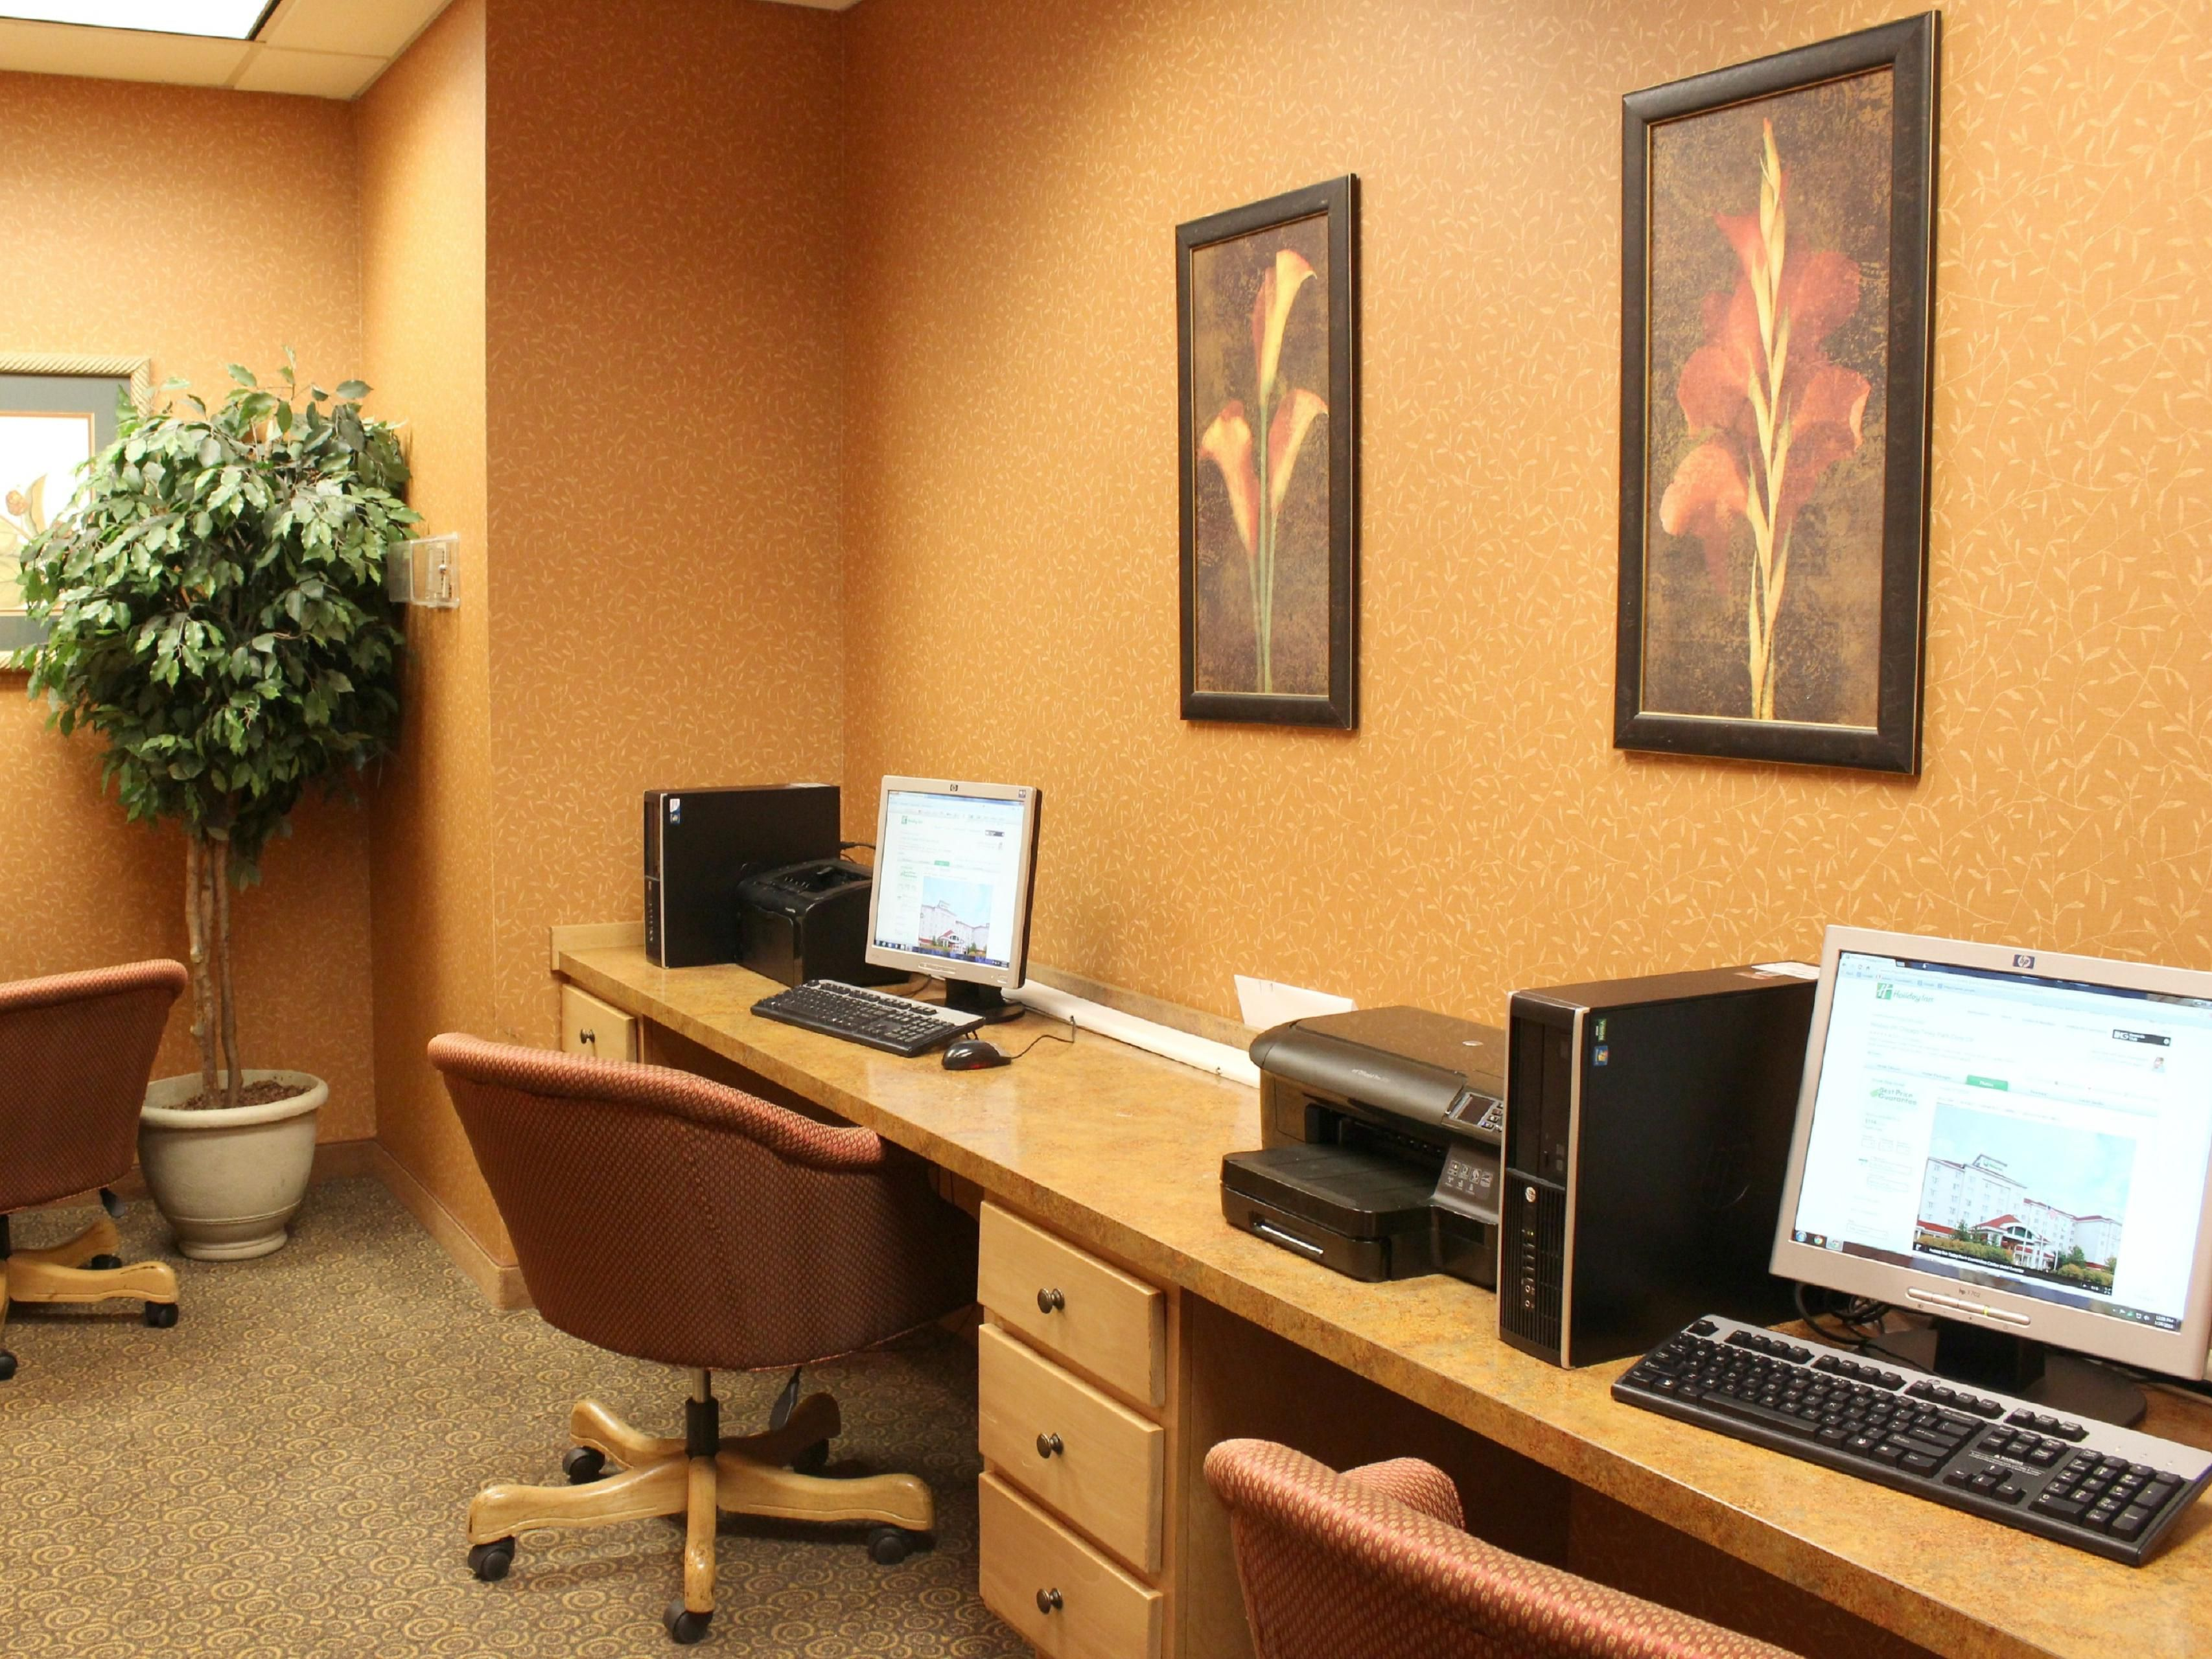 Business Center Located in Hotel Lobby